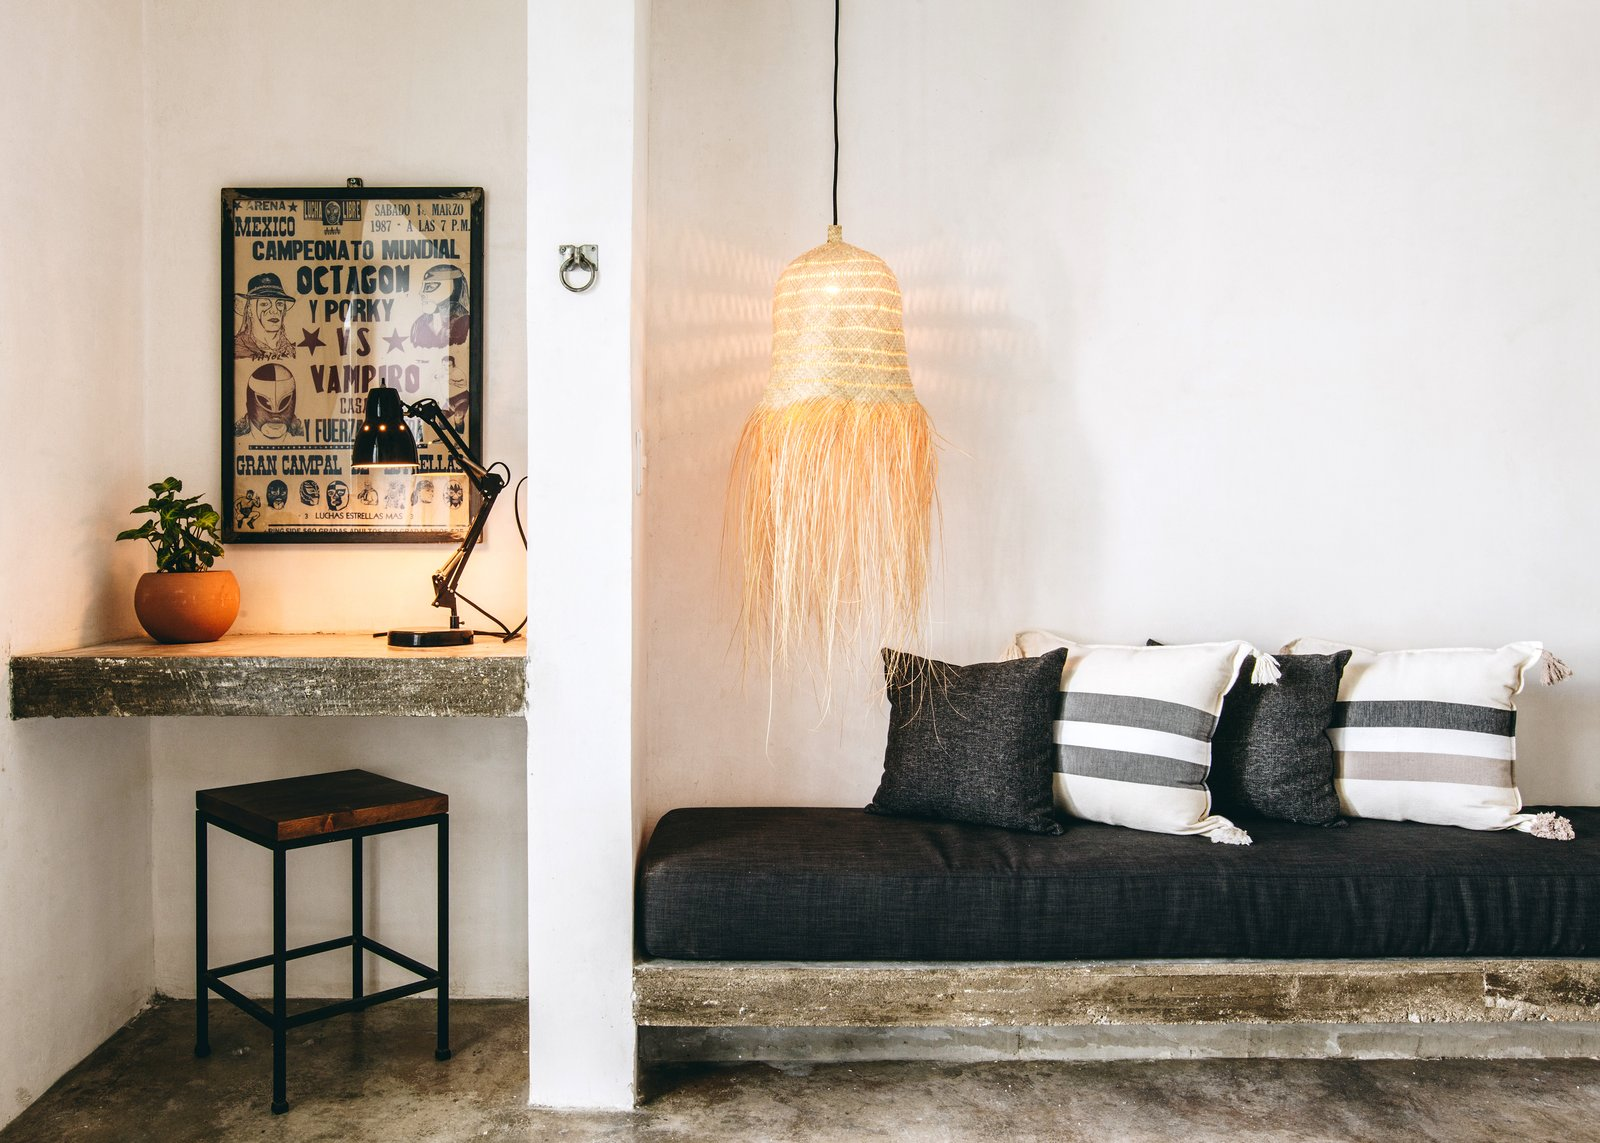 Bedroom, Bench, Bed, Ceiling, Chair, Pendant, Shelves, and Concrete The sale includes all furnishings.  Best Bedroom Shelves Bed Chair Bench Photos from Become a Hotelier in a Surfer's Paradise With This Chic Boutique Property Asking $2.6M